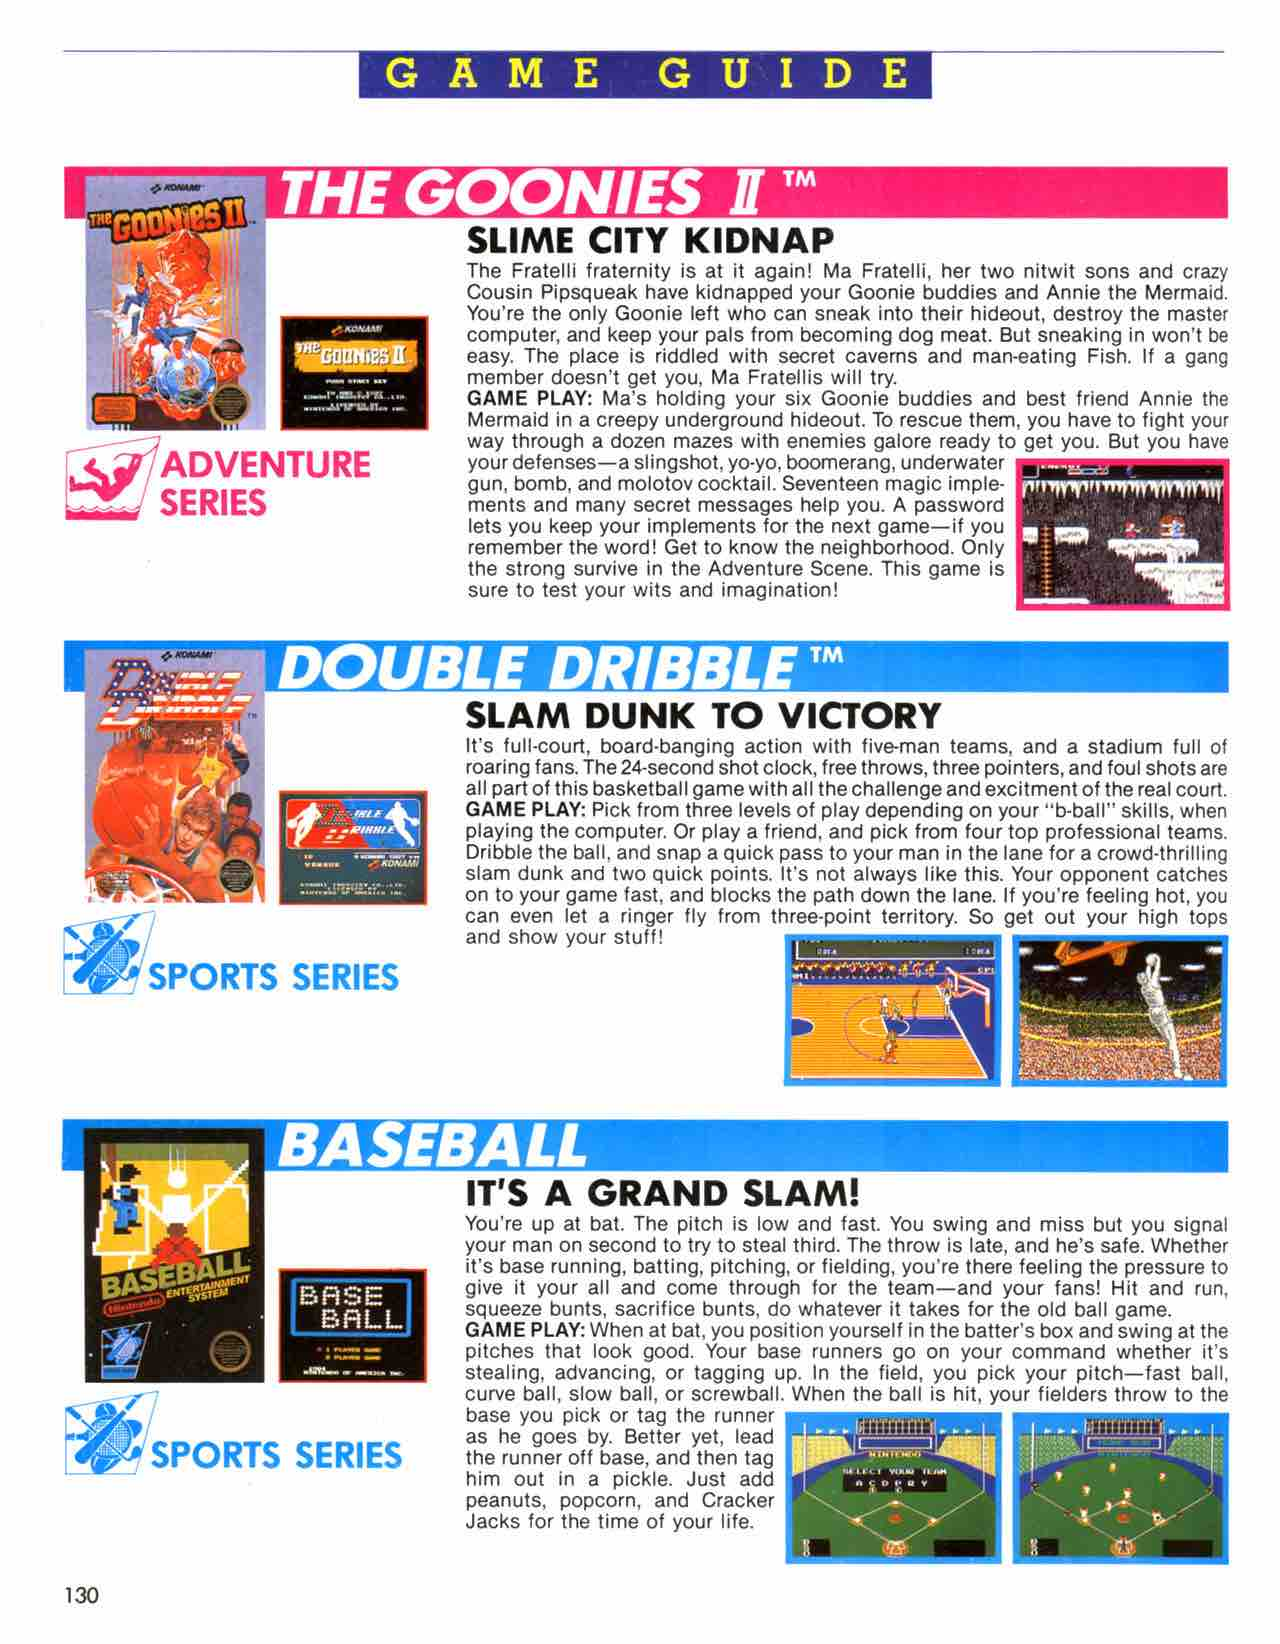 Official Nintendo Player's Guide Pg 130